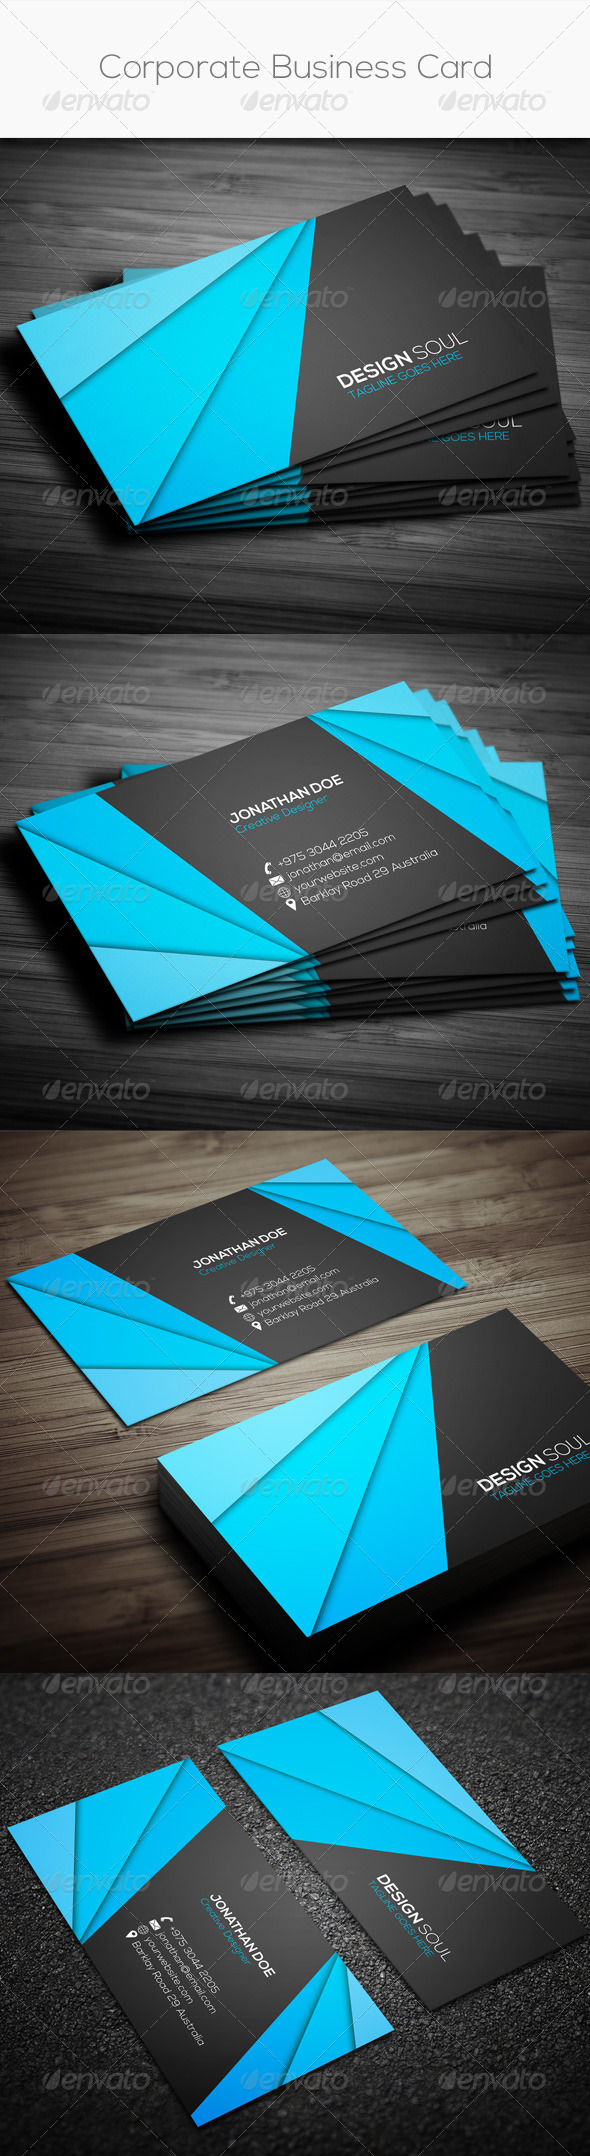 GraphicRiver Corporate Business Card 7659514